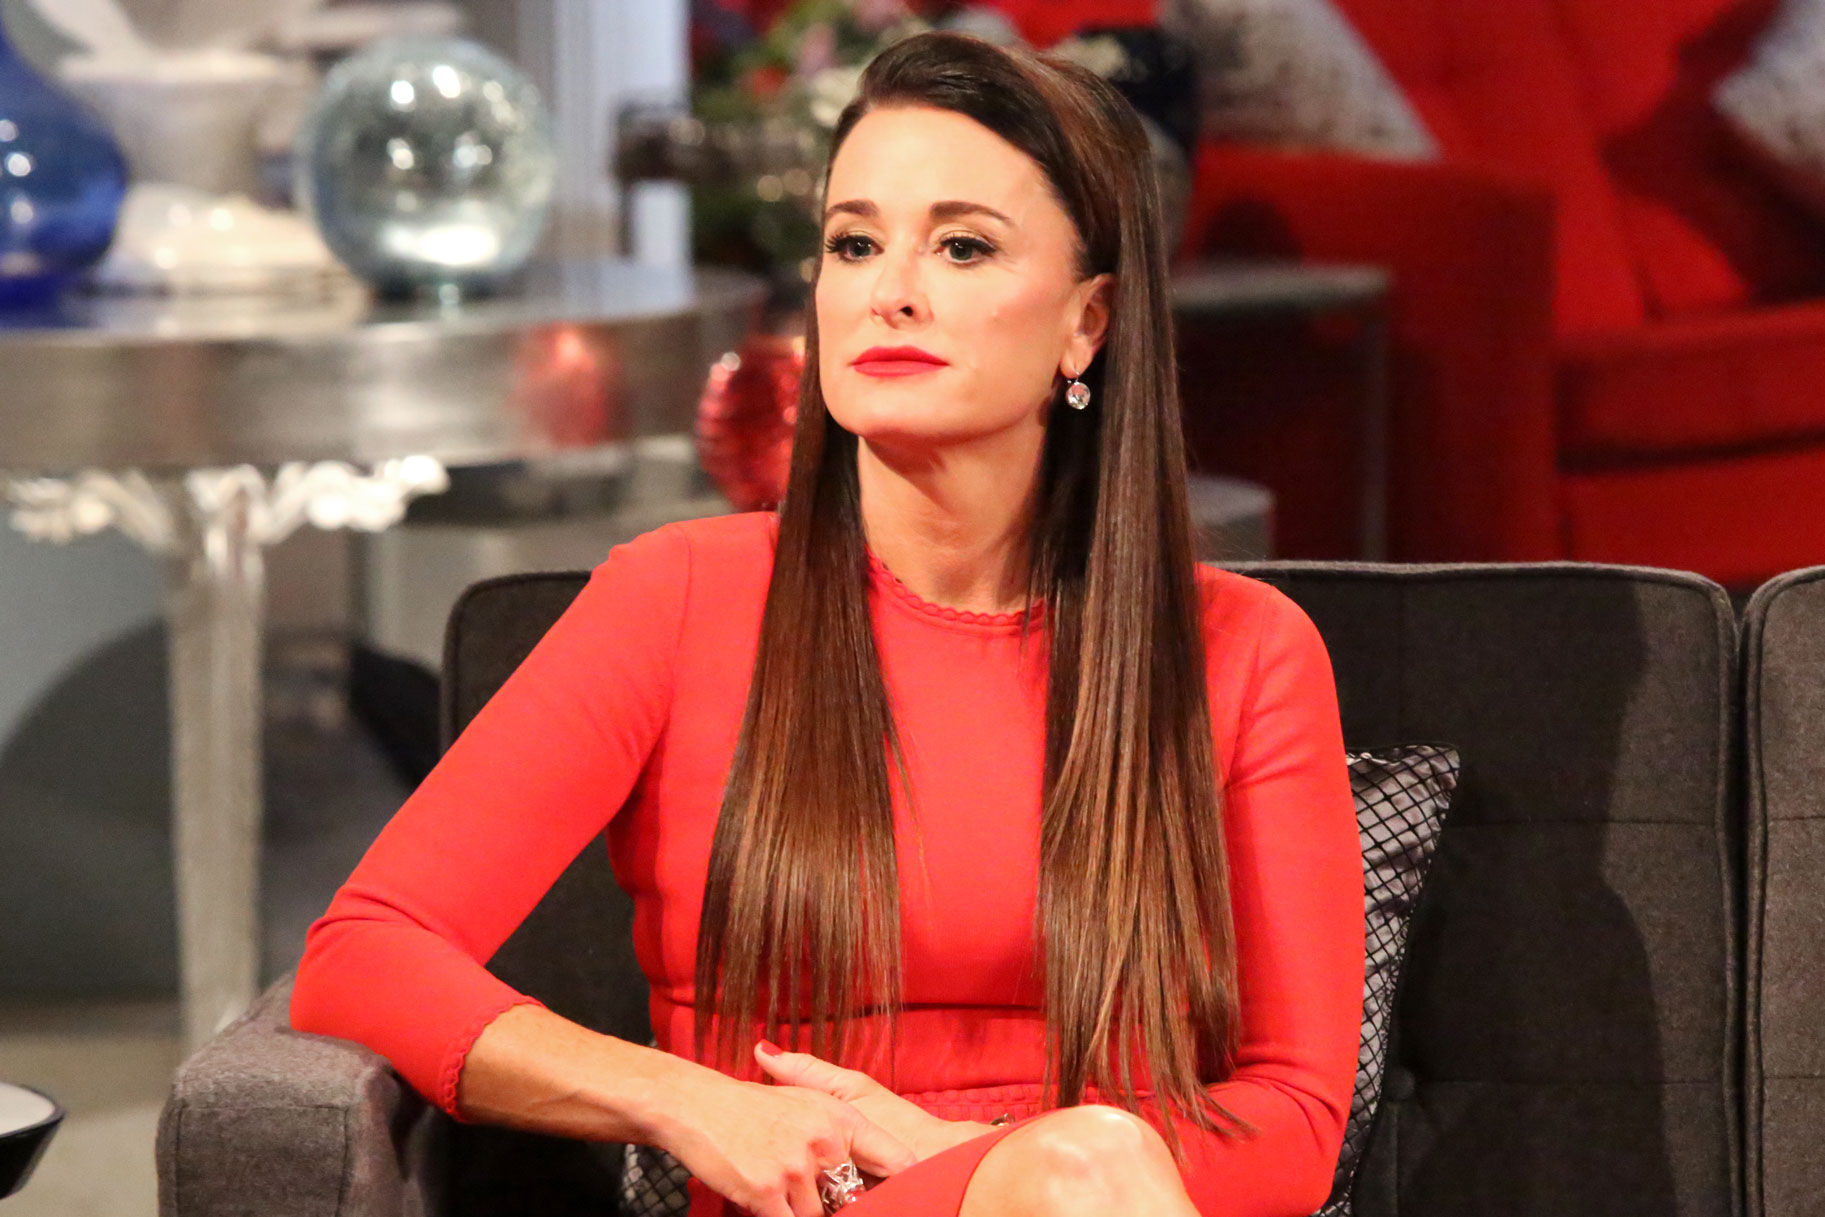 Kyle Richards at The Real Housewives of Beverly Hills Season 5 Reunion